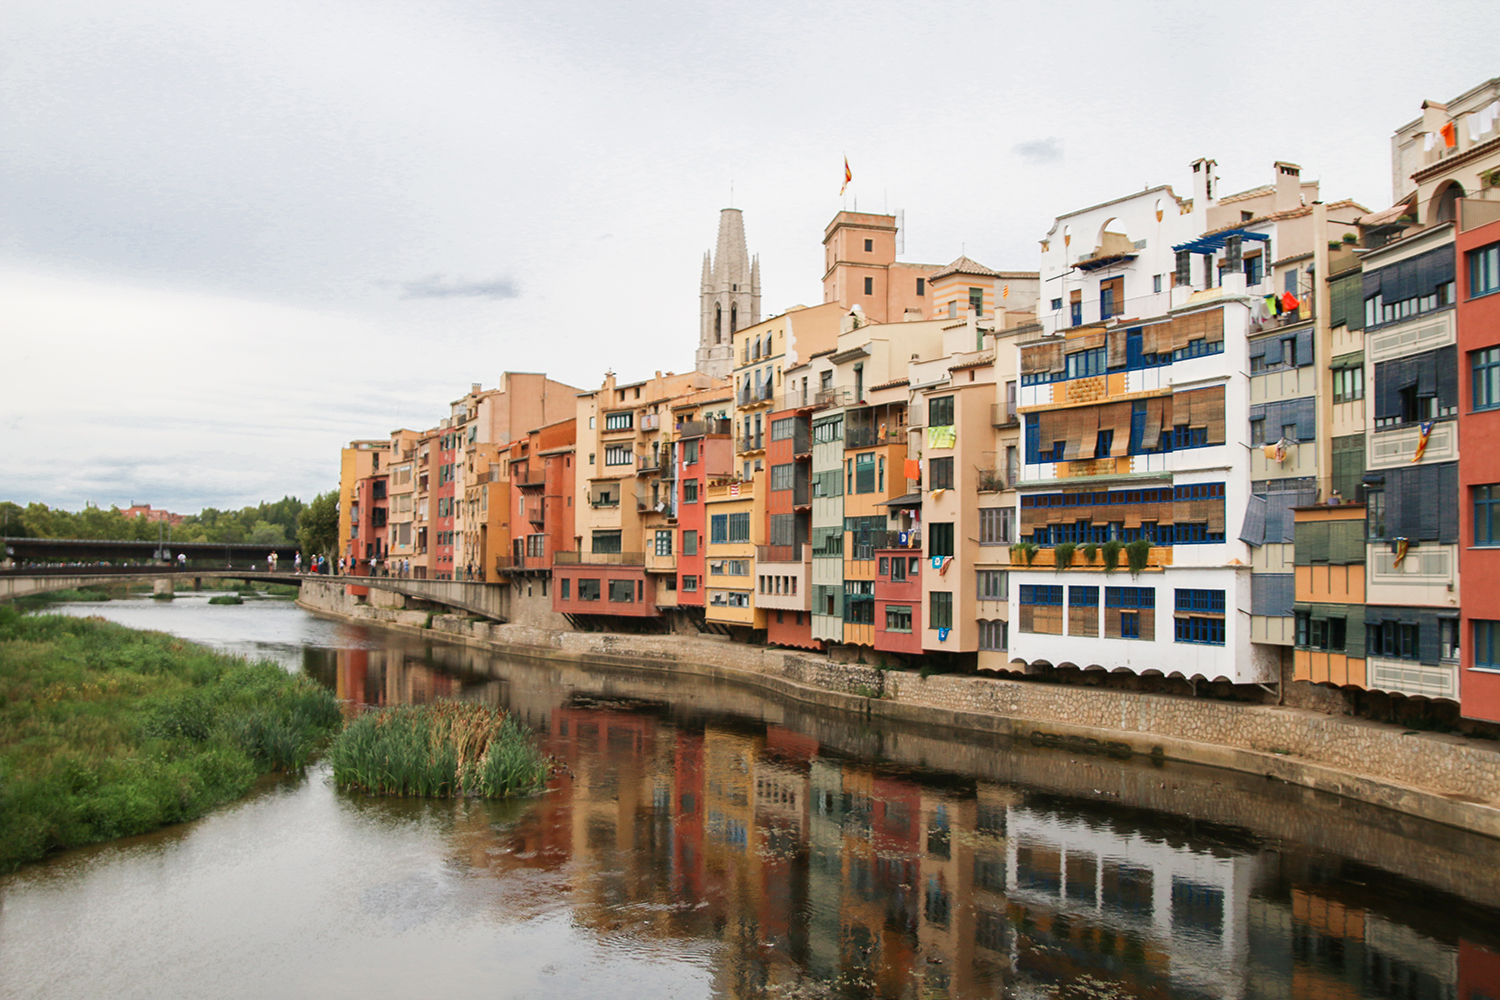 Onyar River Girona is a must visit